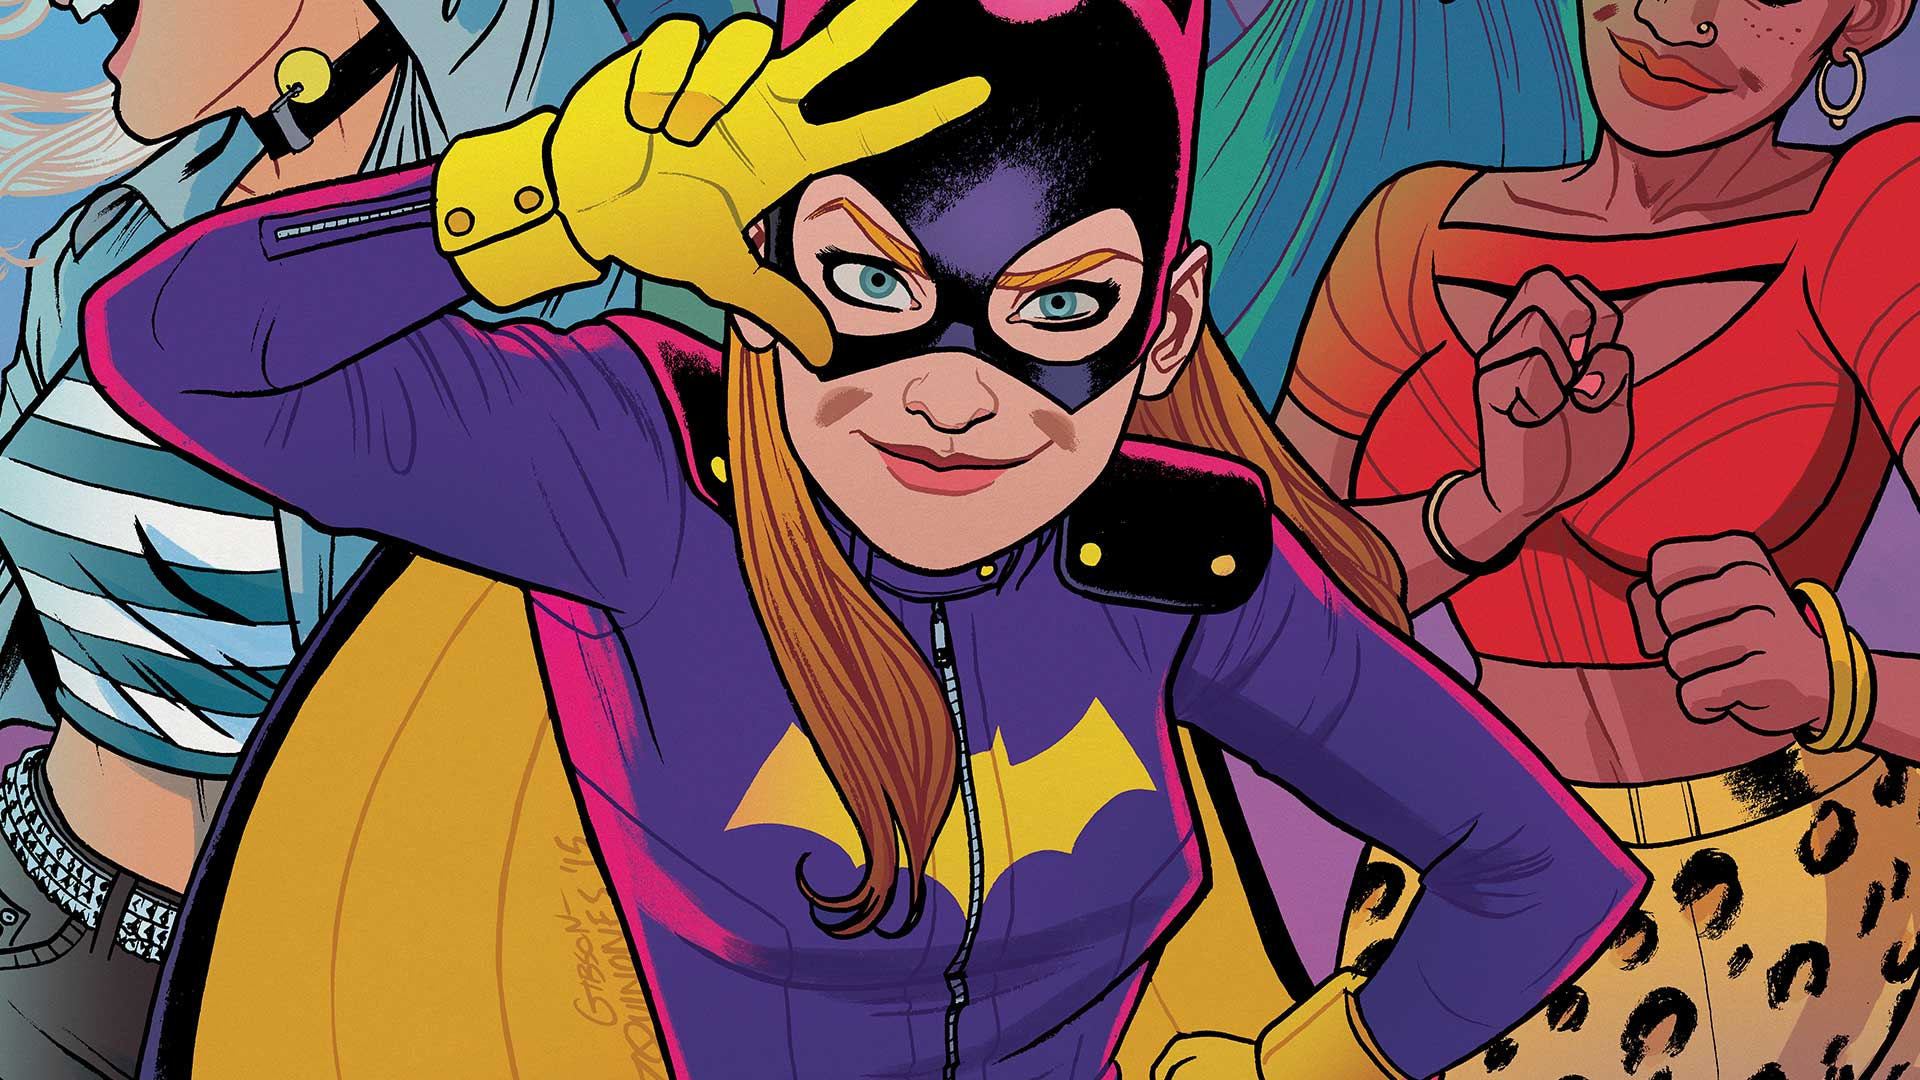 BATGIRL #45 cover by Babs Tarr